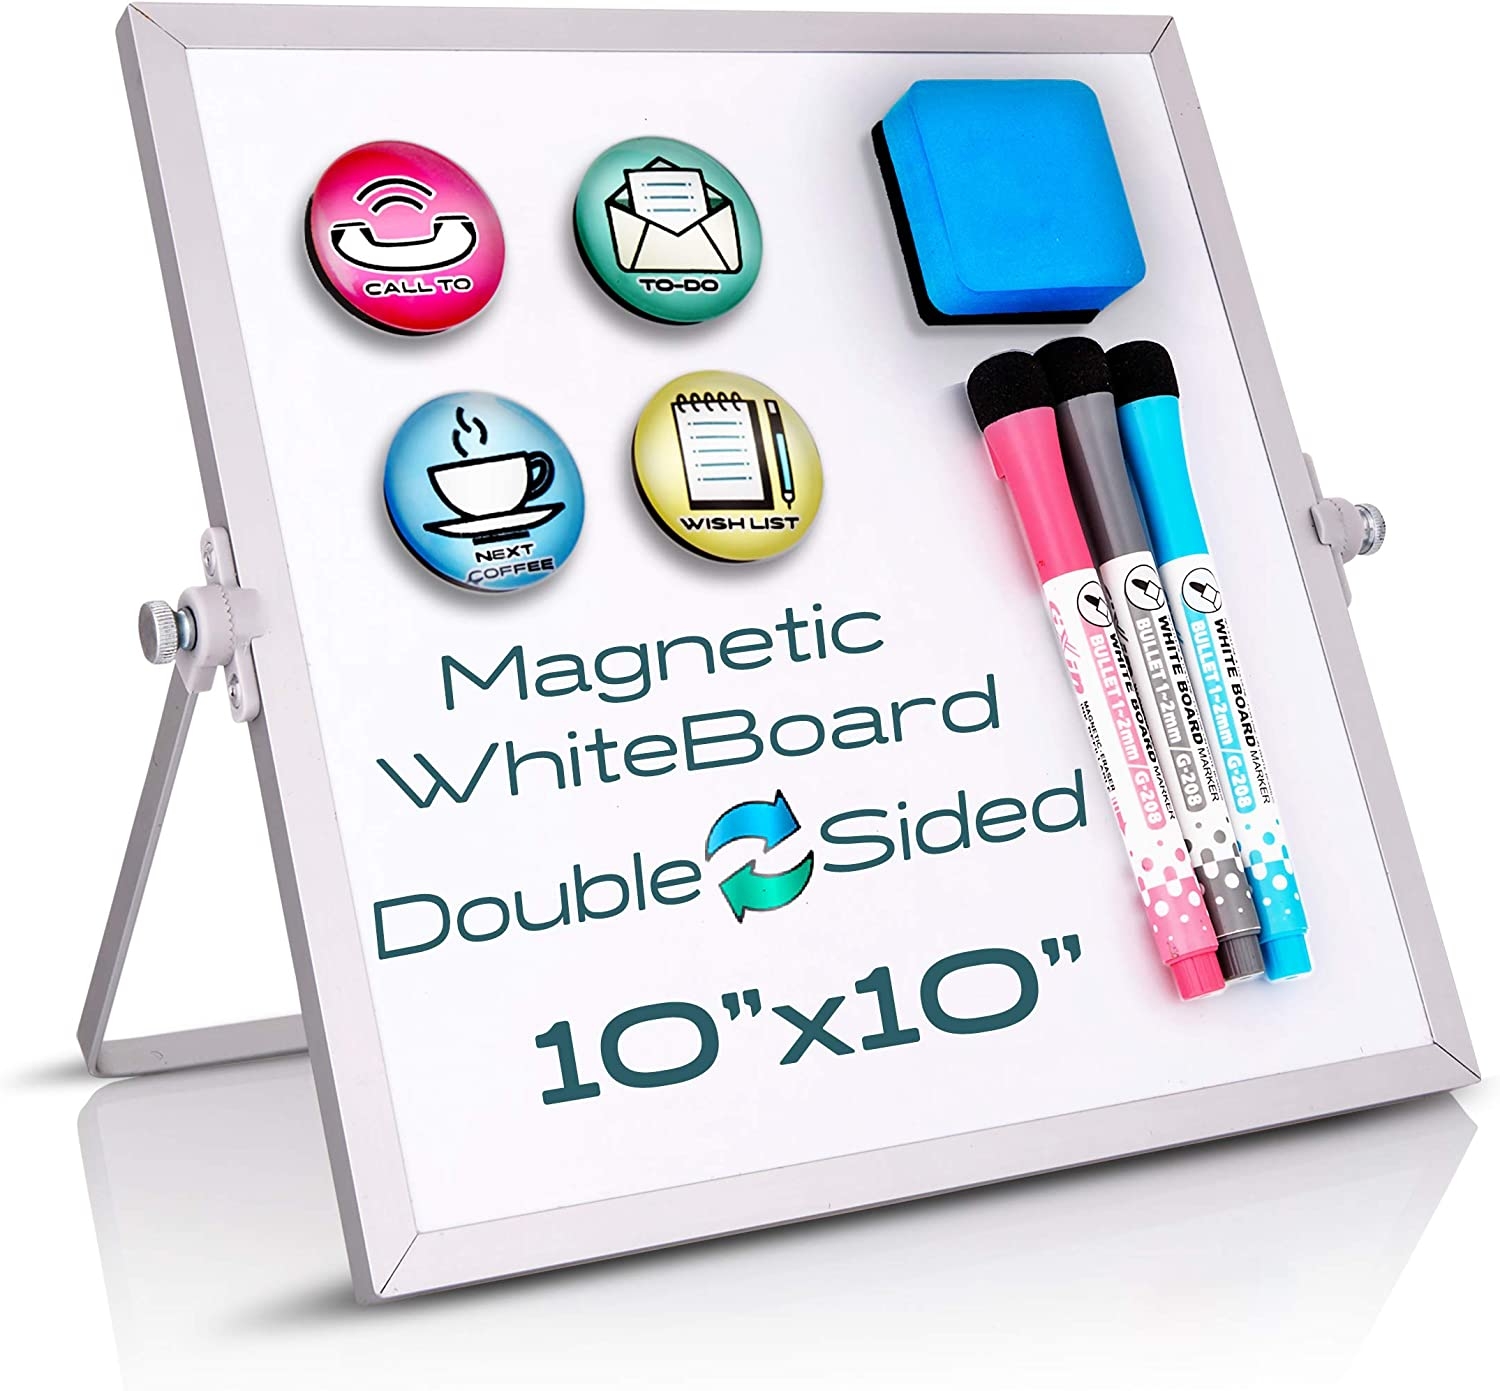 """Small Dry Erase Board - Desktop Portable Whiteboard 10"""" X 10"""" With Stand, 3 Markers, 4 Magnets & Eraser - Tabletop Double-Sided 360 Portable Mini White Board For Office Desk, Kids Home School Students"""